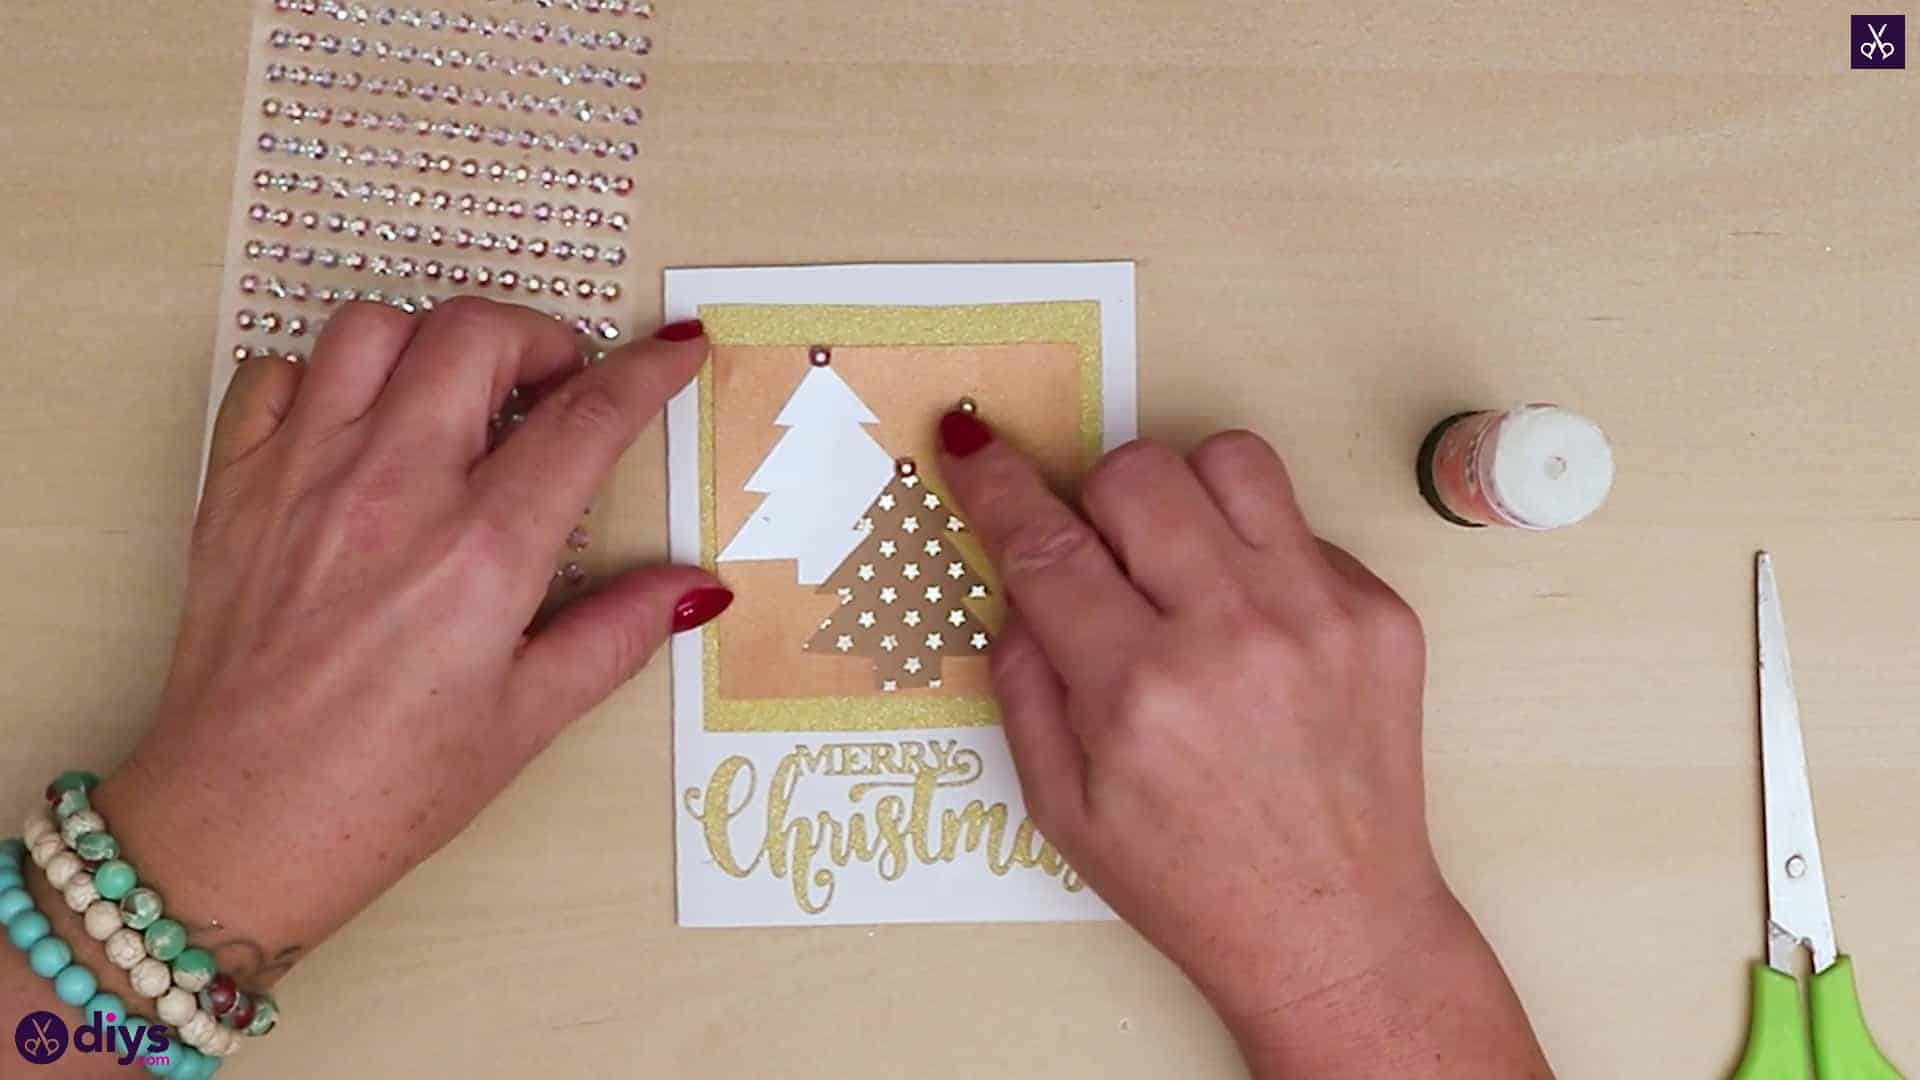 Diy christmas tree card for holiday